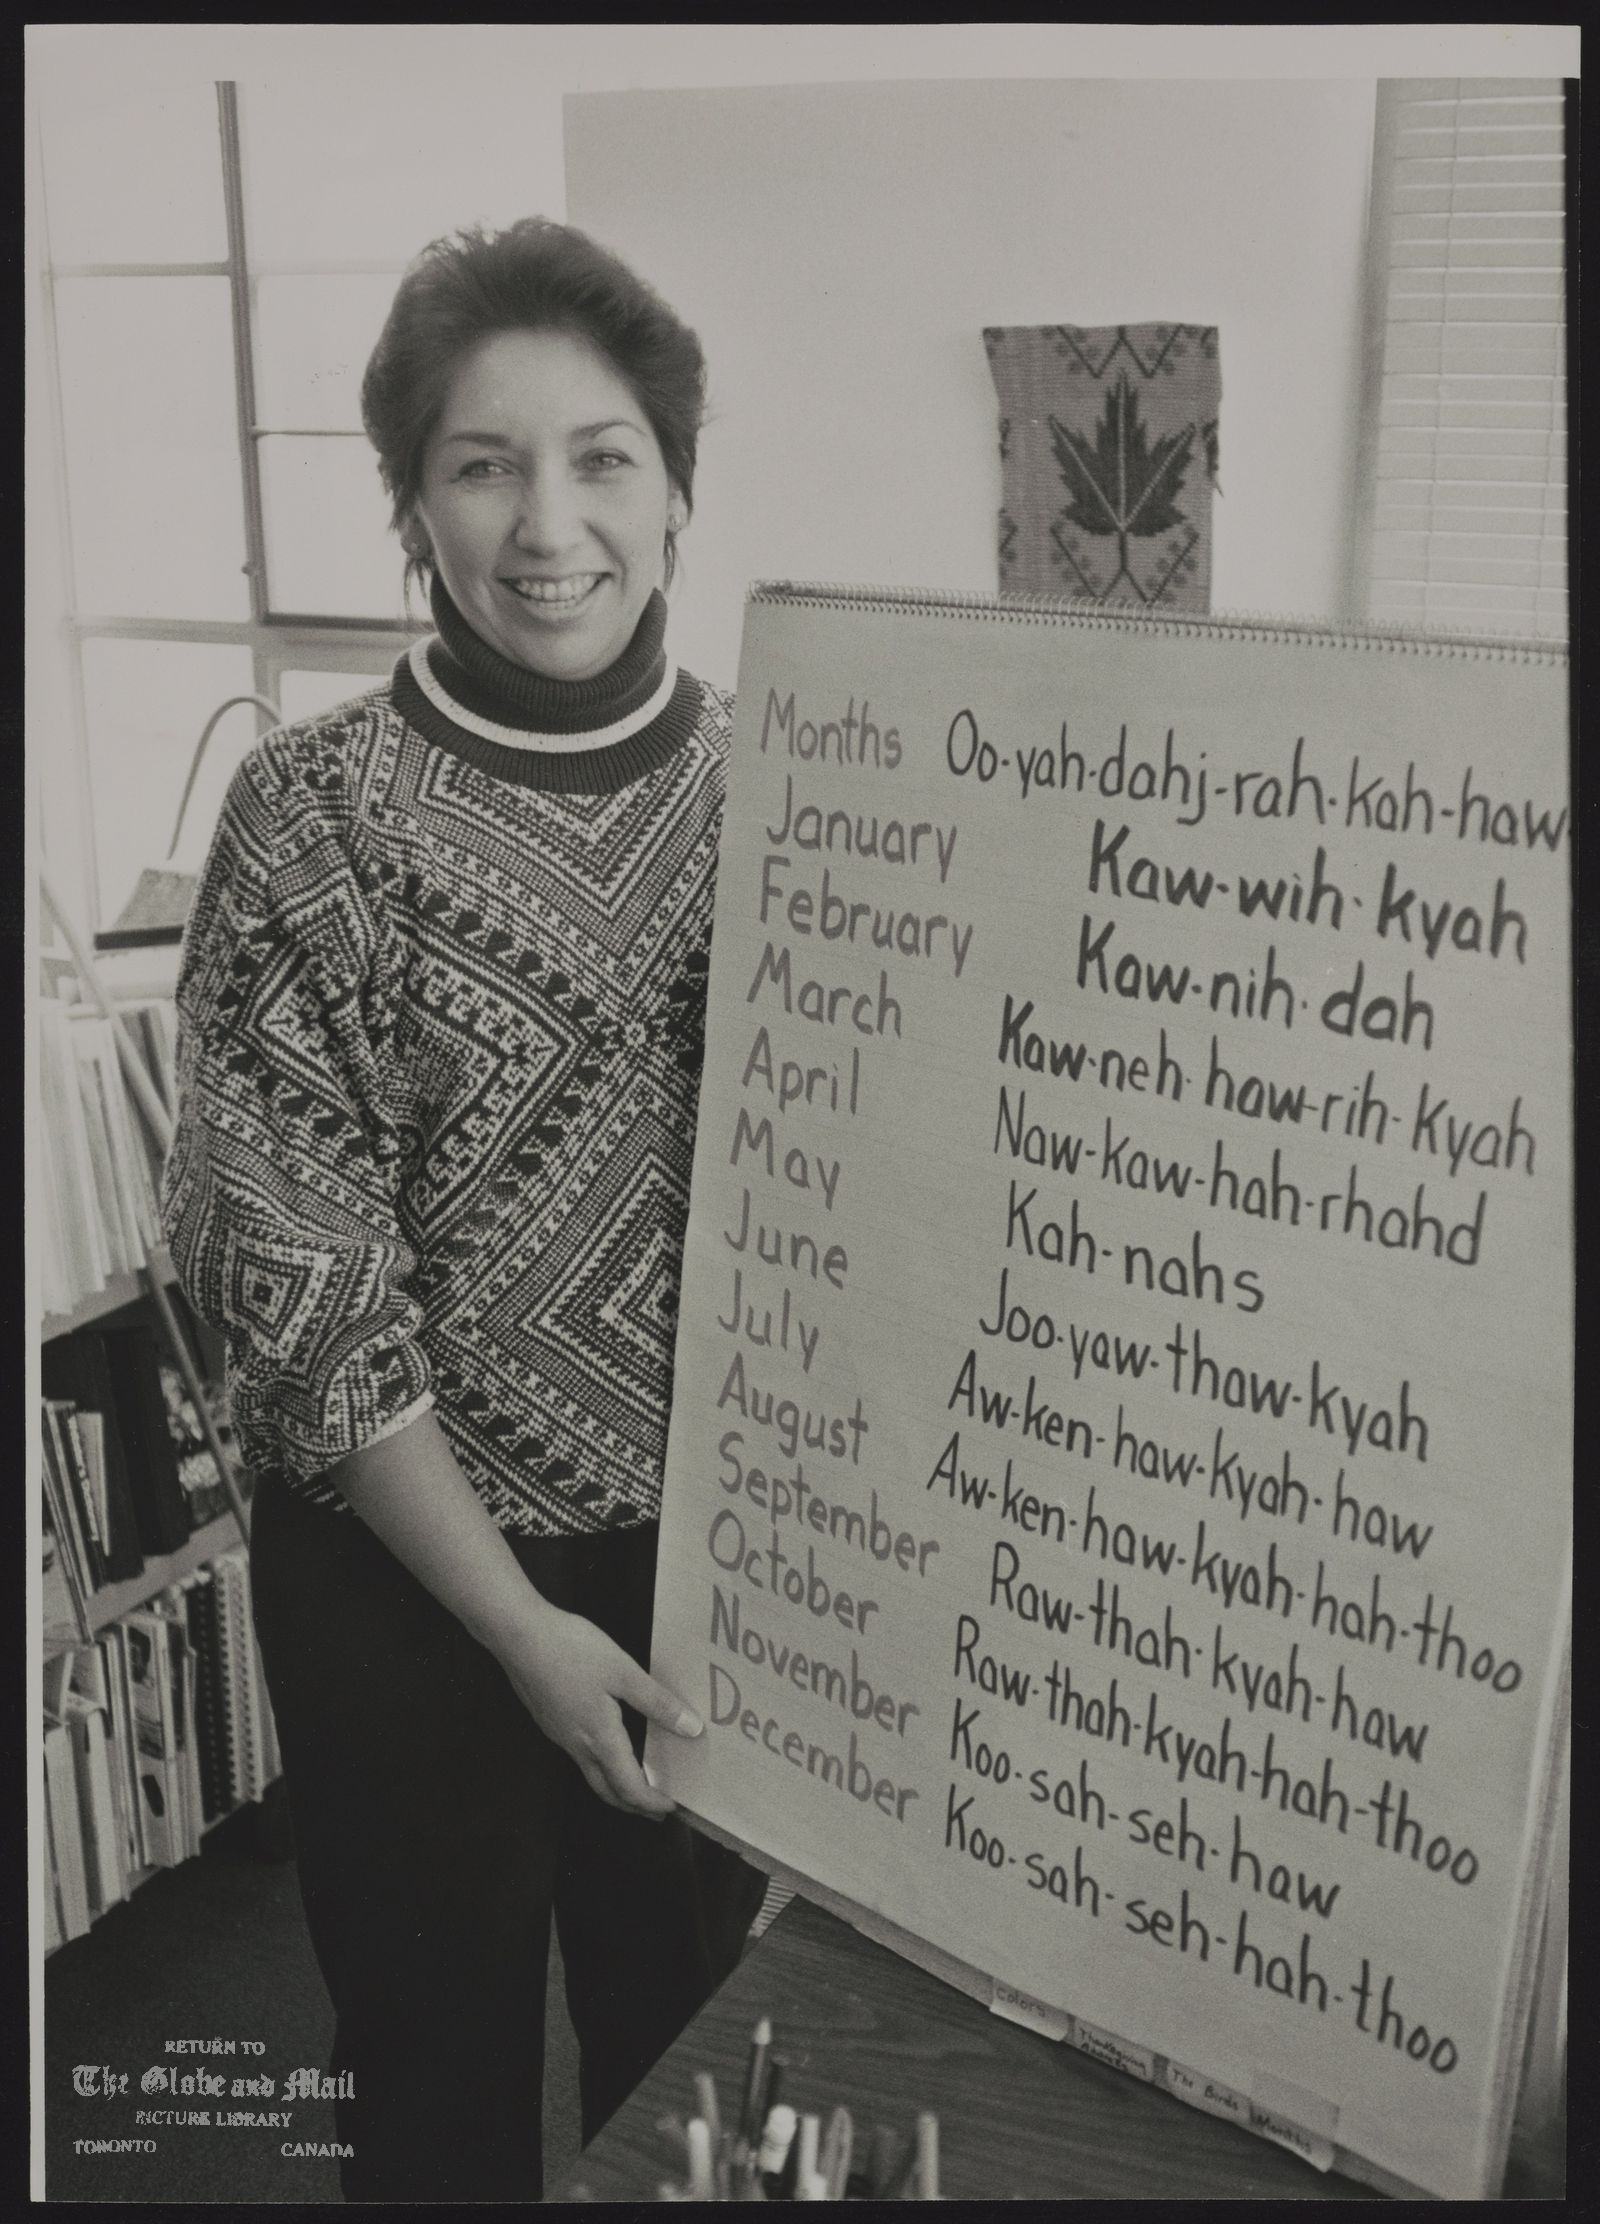 NATIVE PEOPLE CANADA MISCELLANEOUS TUSCARORA TEACHER BETSY BISSELL, DISPLAYS PRONUNCIATION CHART FOR THE IROQUOIS CONFEDERACY LANGUAGE.